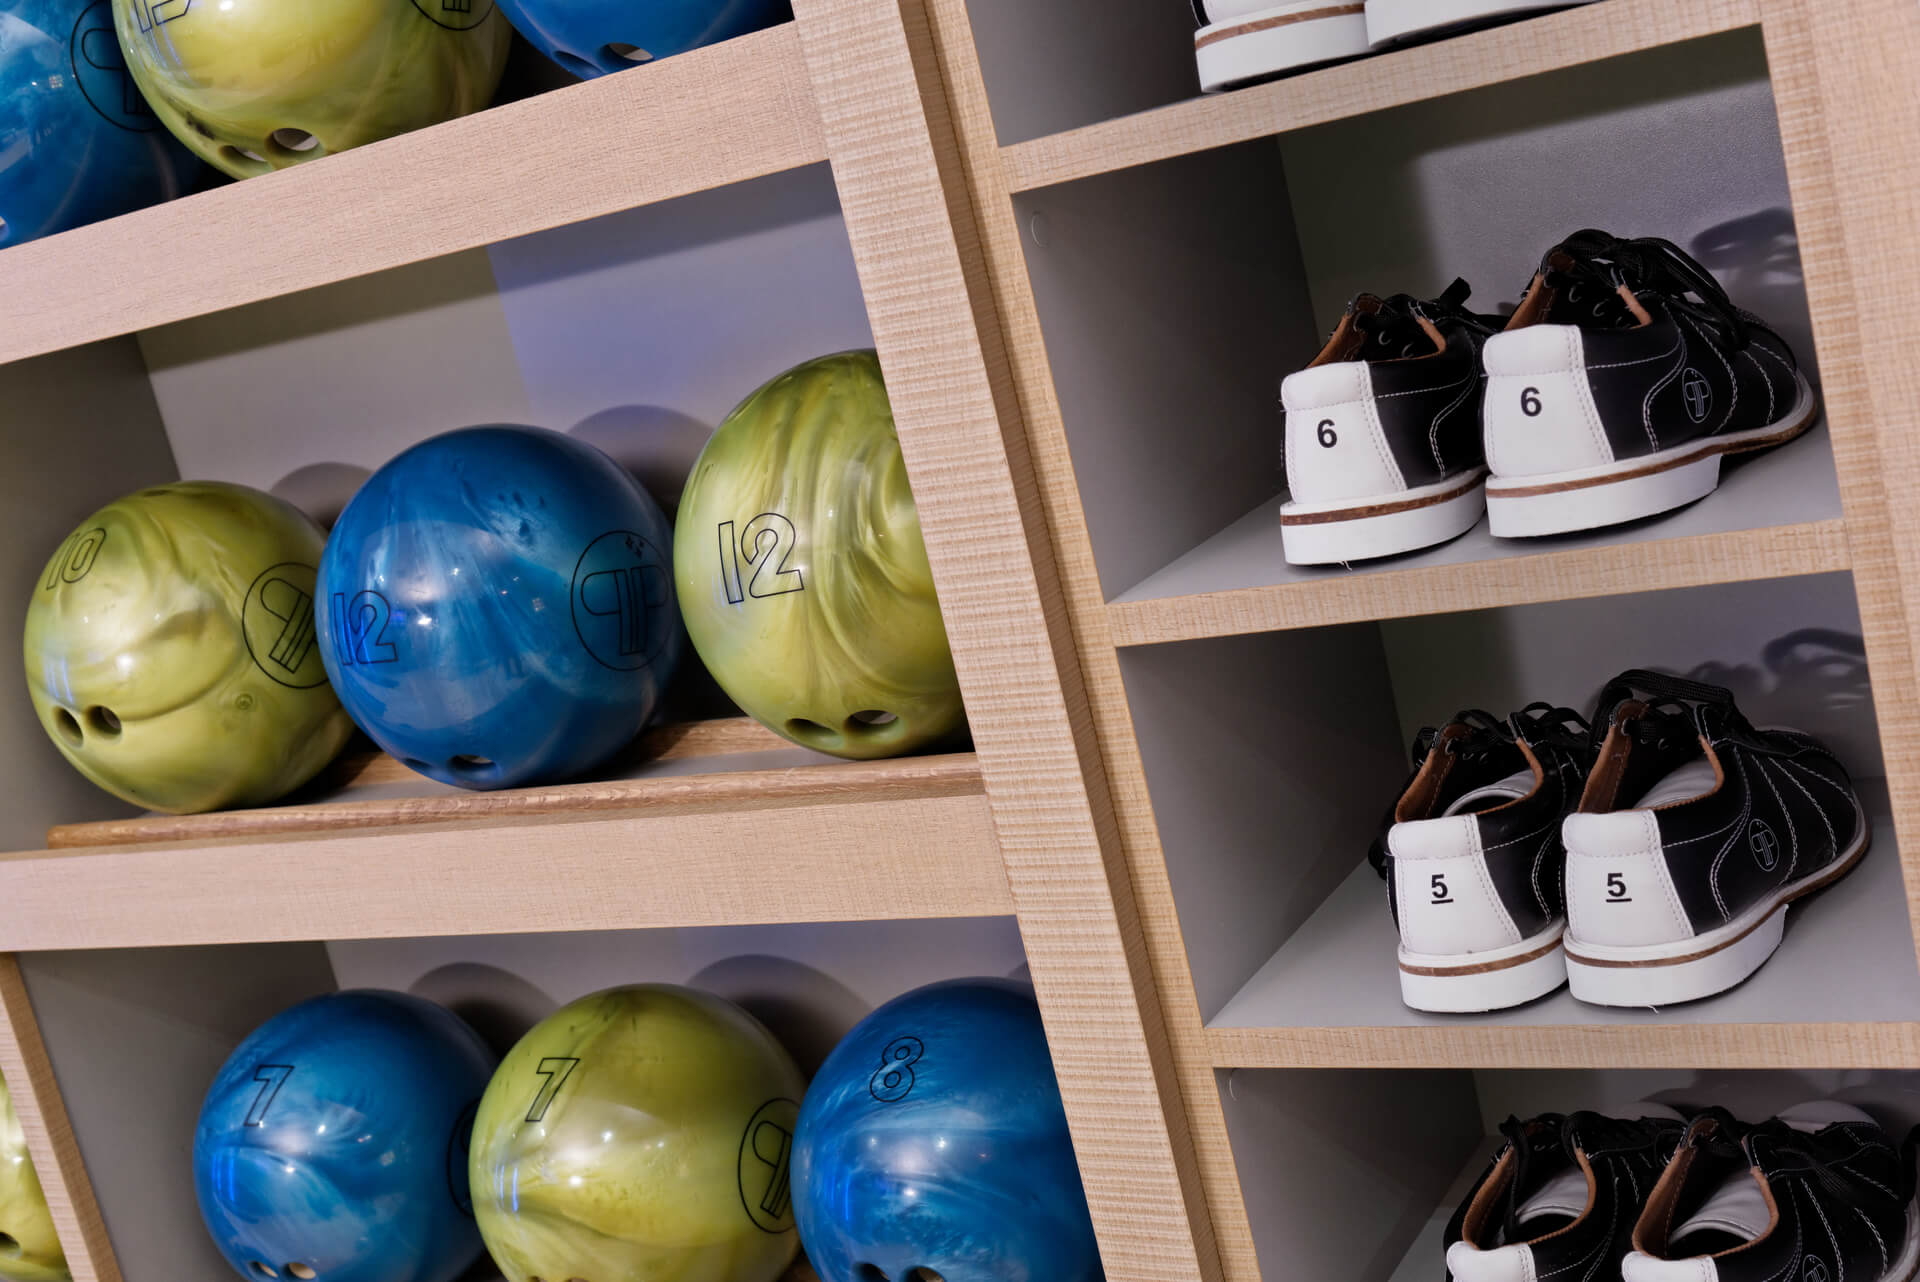 Superieur Bowling Ball U0026 Shoe Storage For Home Bowling Alley